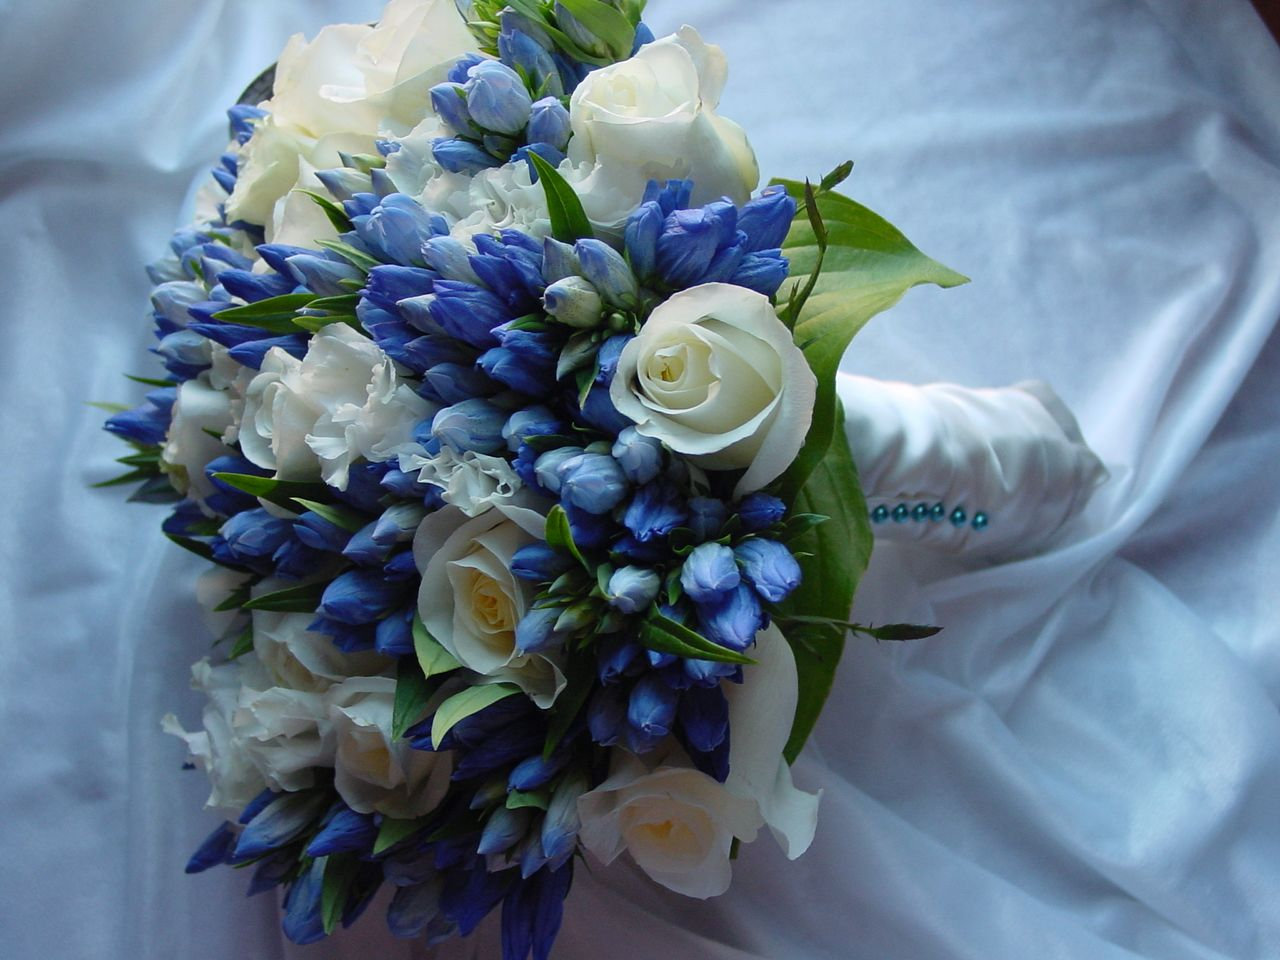 Blue wedding bouquets ideas inspirations bridal bouquets blue wedding bouquets ideas inspirations junglespirit Images